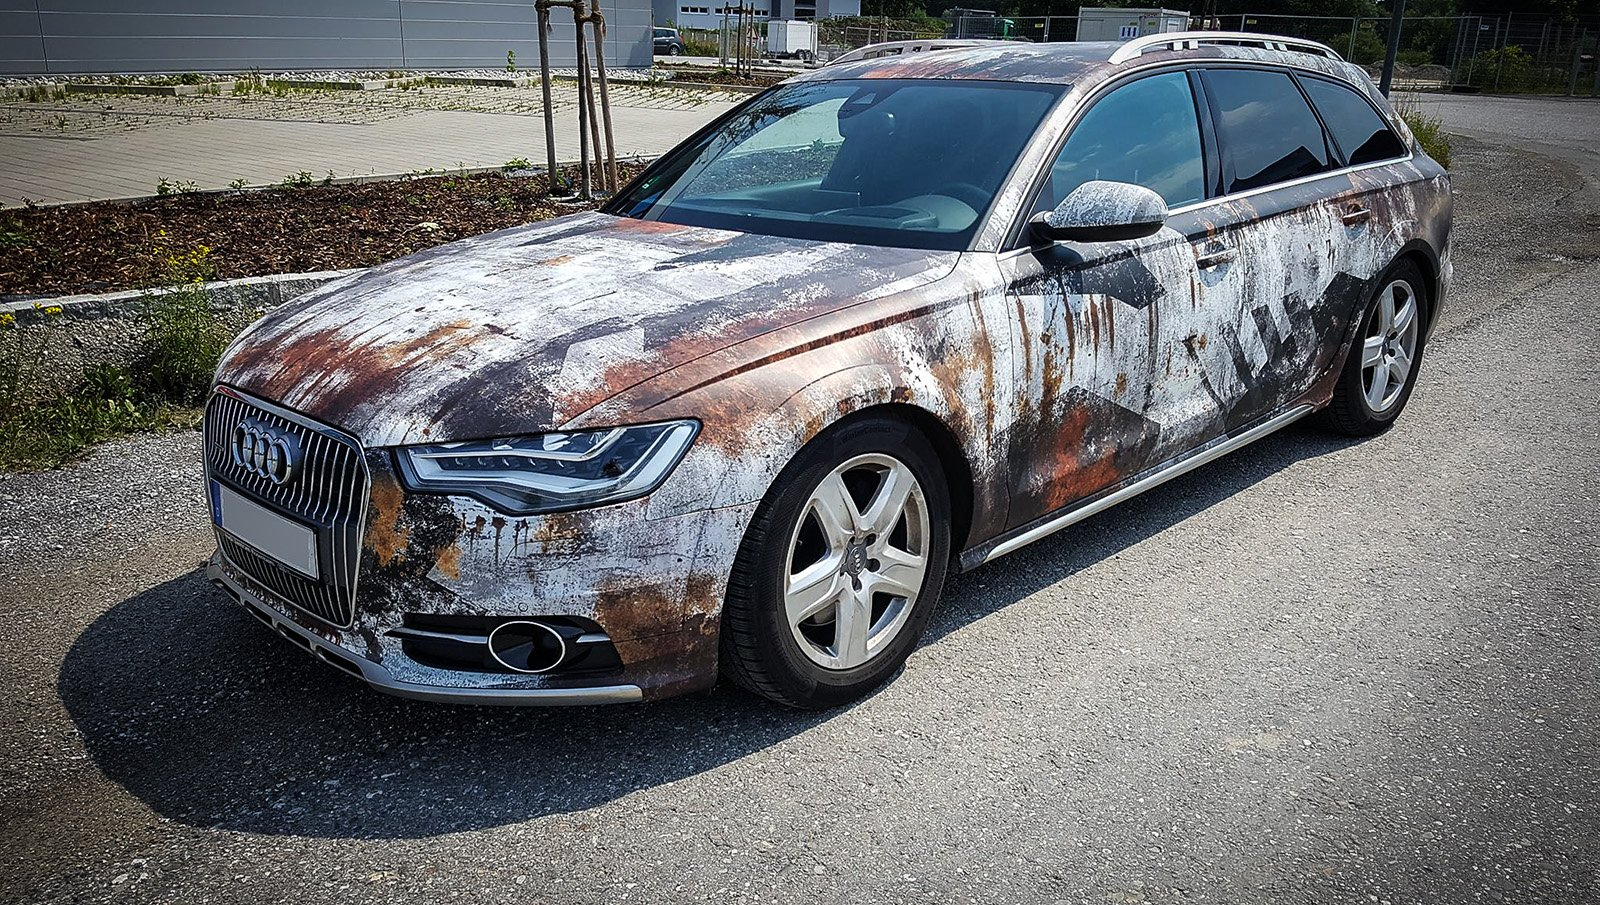 Alexander On Twitter Quot Rusty Audi A6 Wrapped Shiny